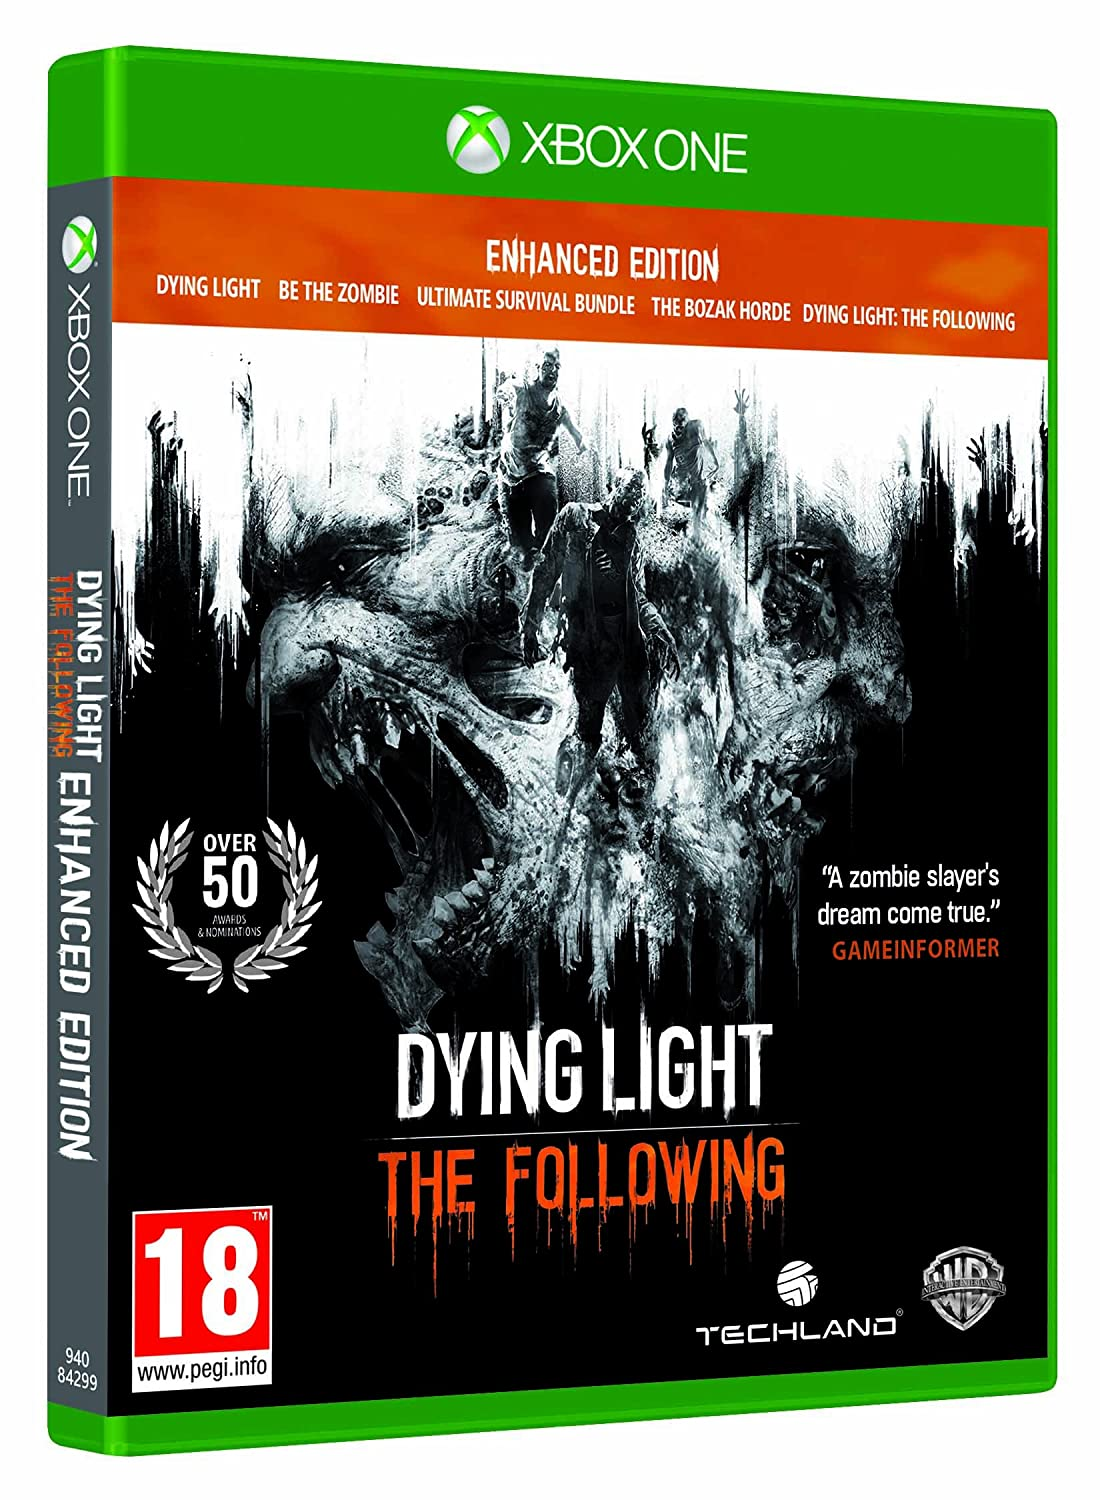 Dying Light The Following Enhanced Edition Xbox e Amazon